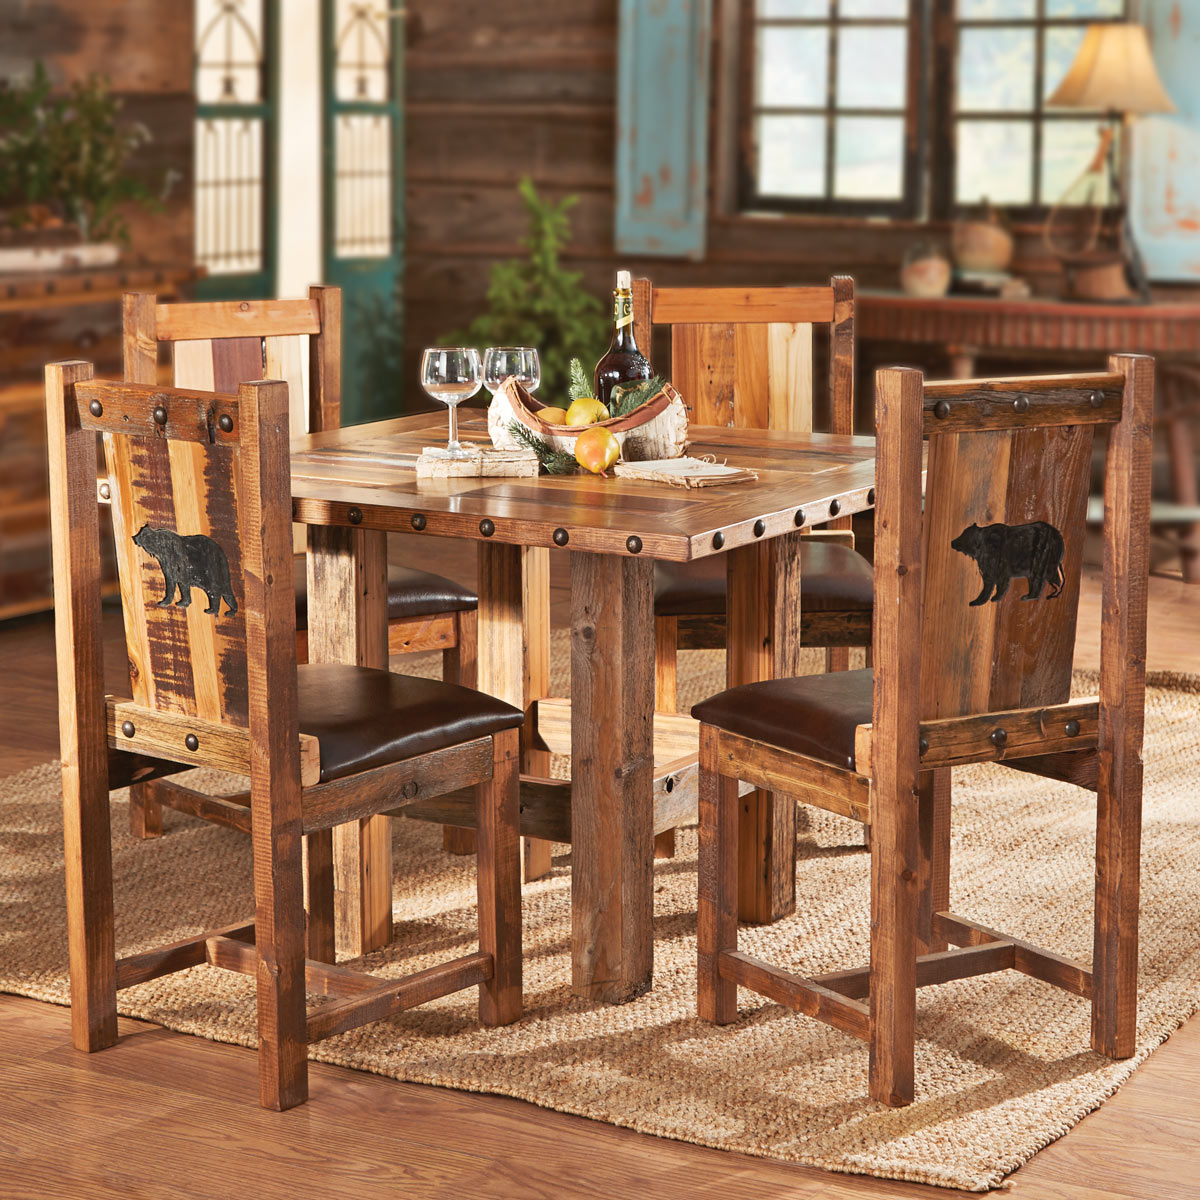 Black Forest Decor Carved bear barnwood table and chairs ...